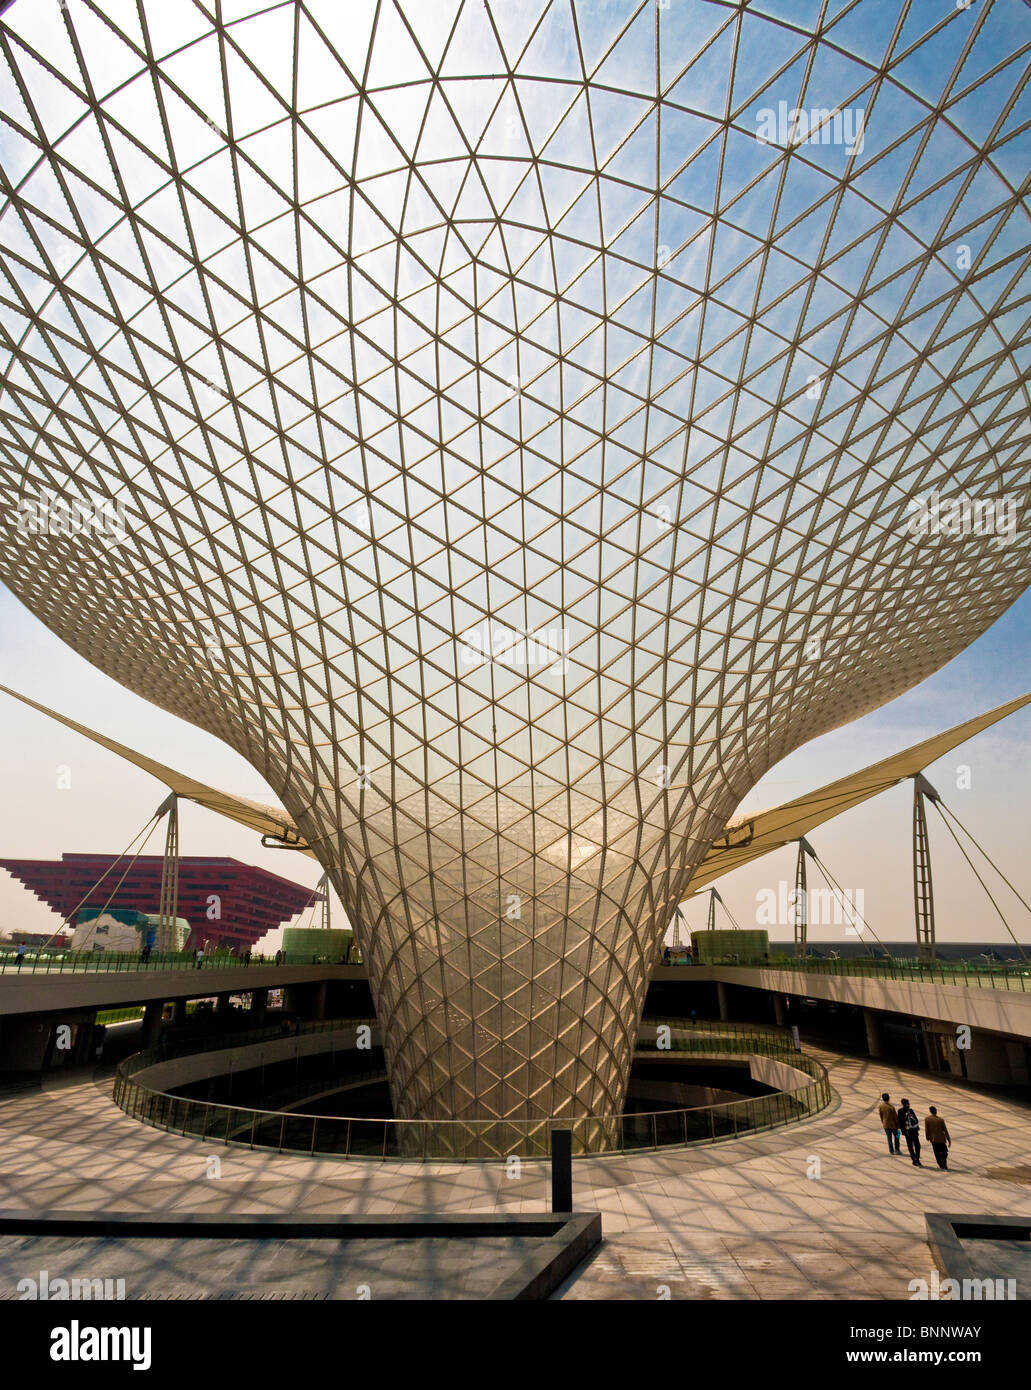 China Shanghai Expo Expo boulevard architecture world exhibit traveling tourism vacation holidays architecture - Stock Image